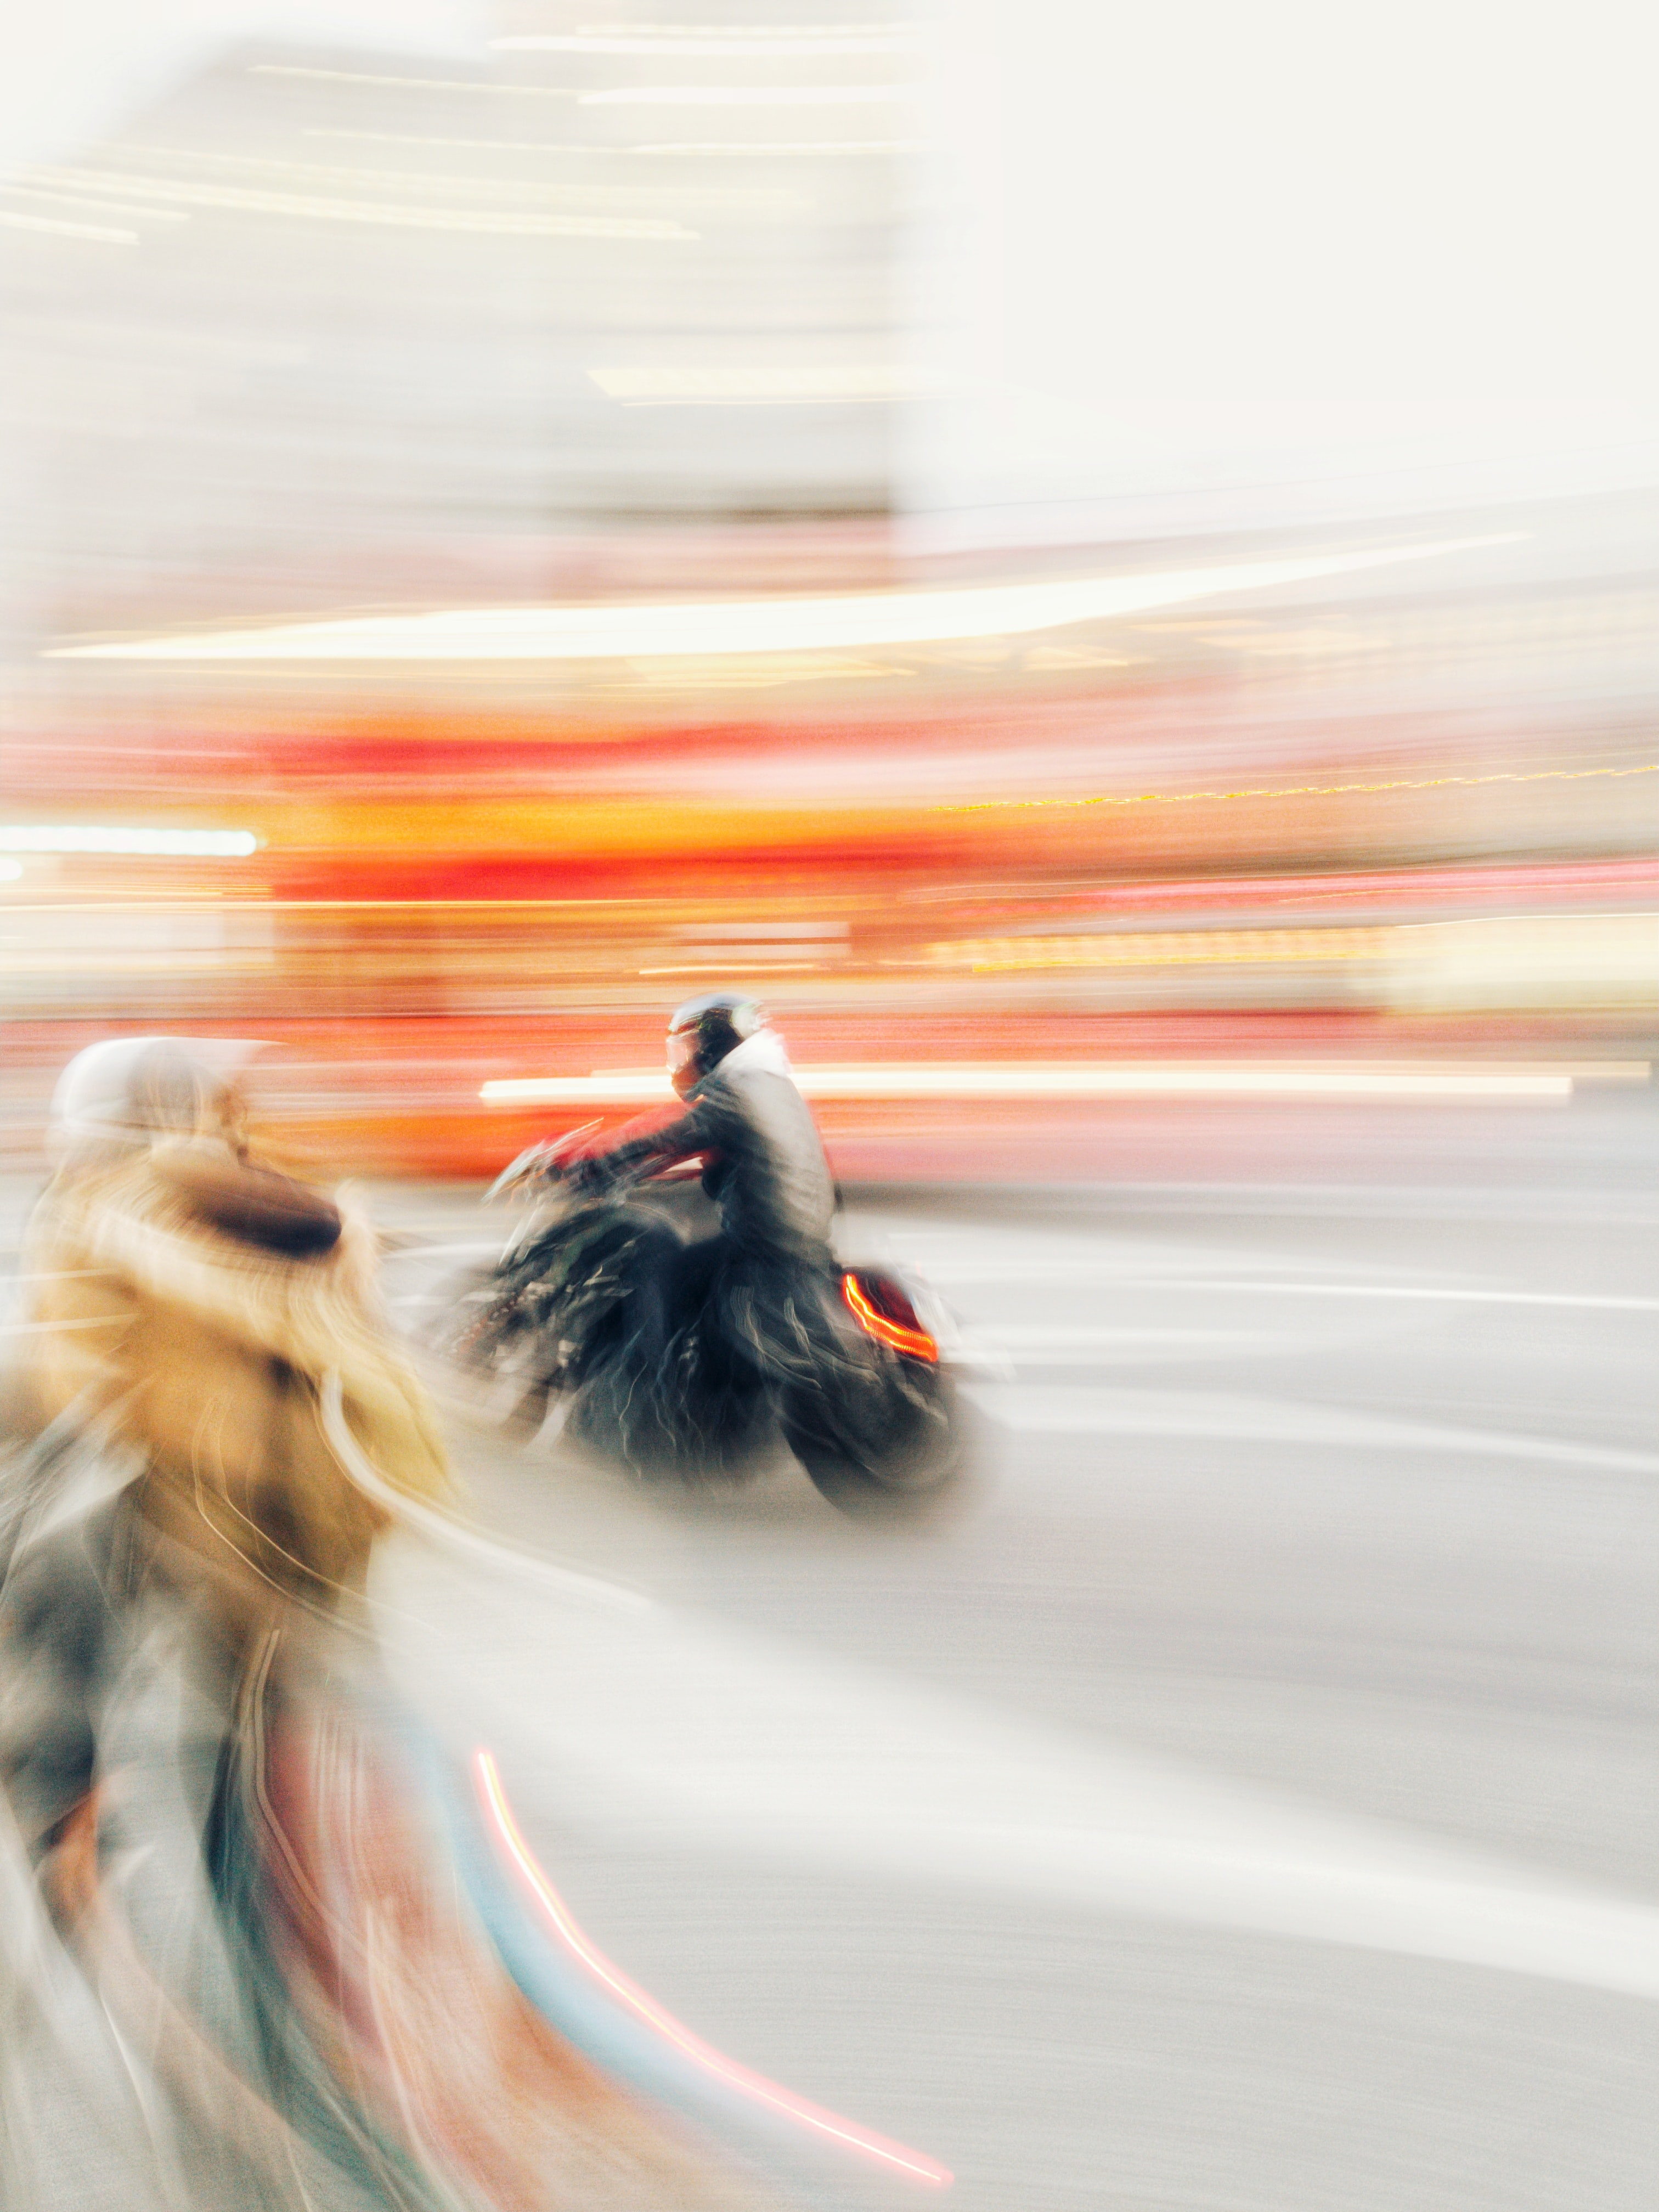 time lapse photography of man riding on motorcycle